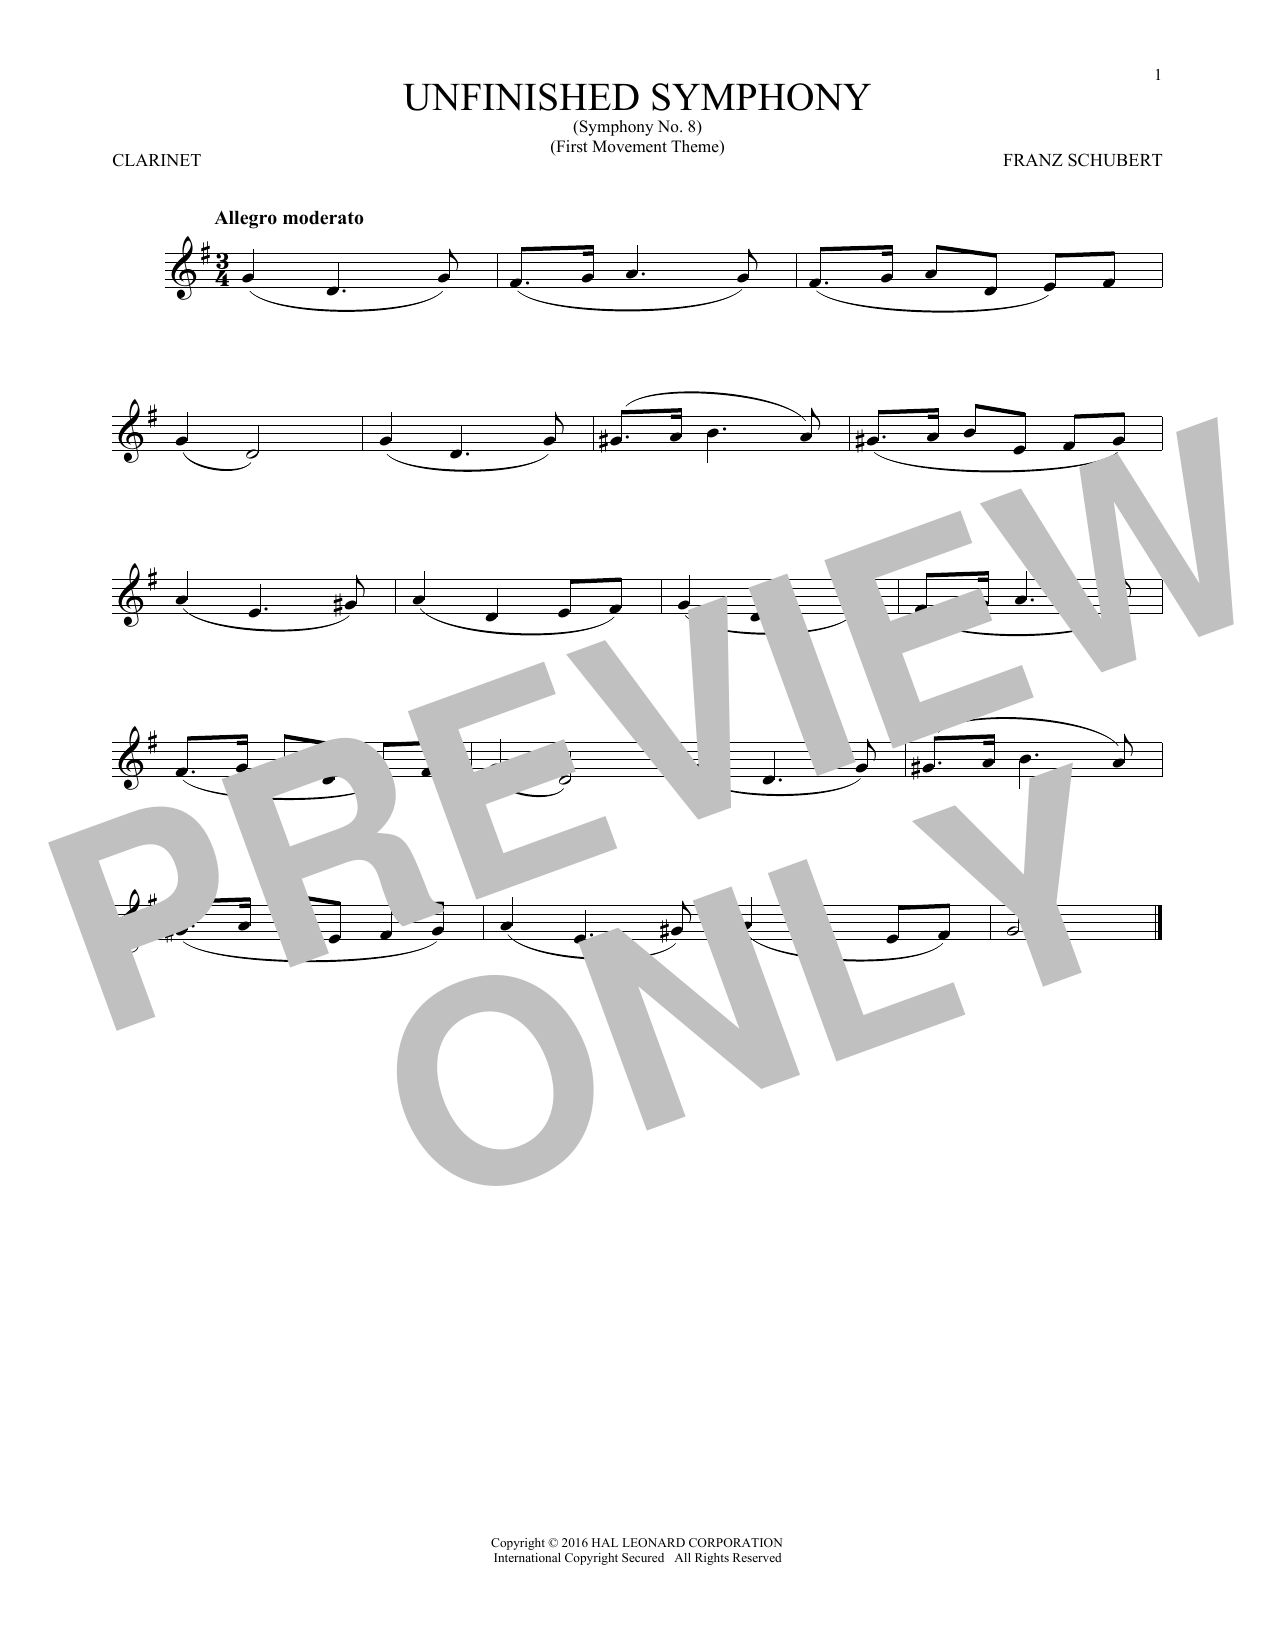 The Unfinished Symphony (Theme) (Clarinet Solo)